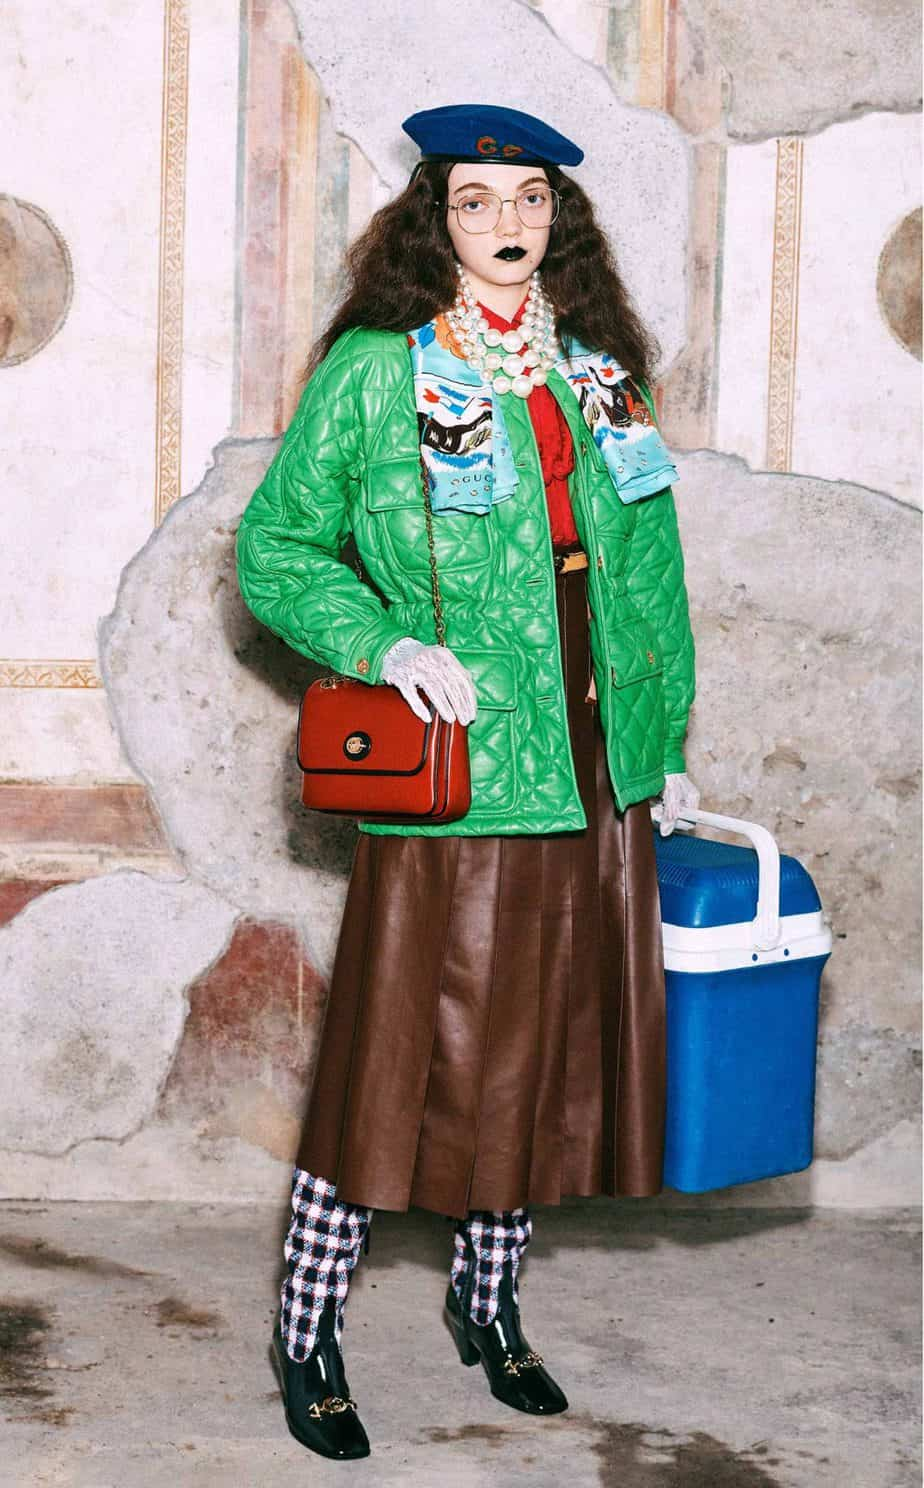 GUCCI, FALL 2019. WOMEN'S FASHION, Photographer Harmony Korine, Art Director, Christopher Simmonds - 89